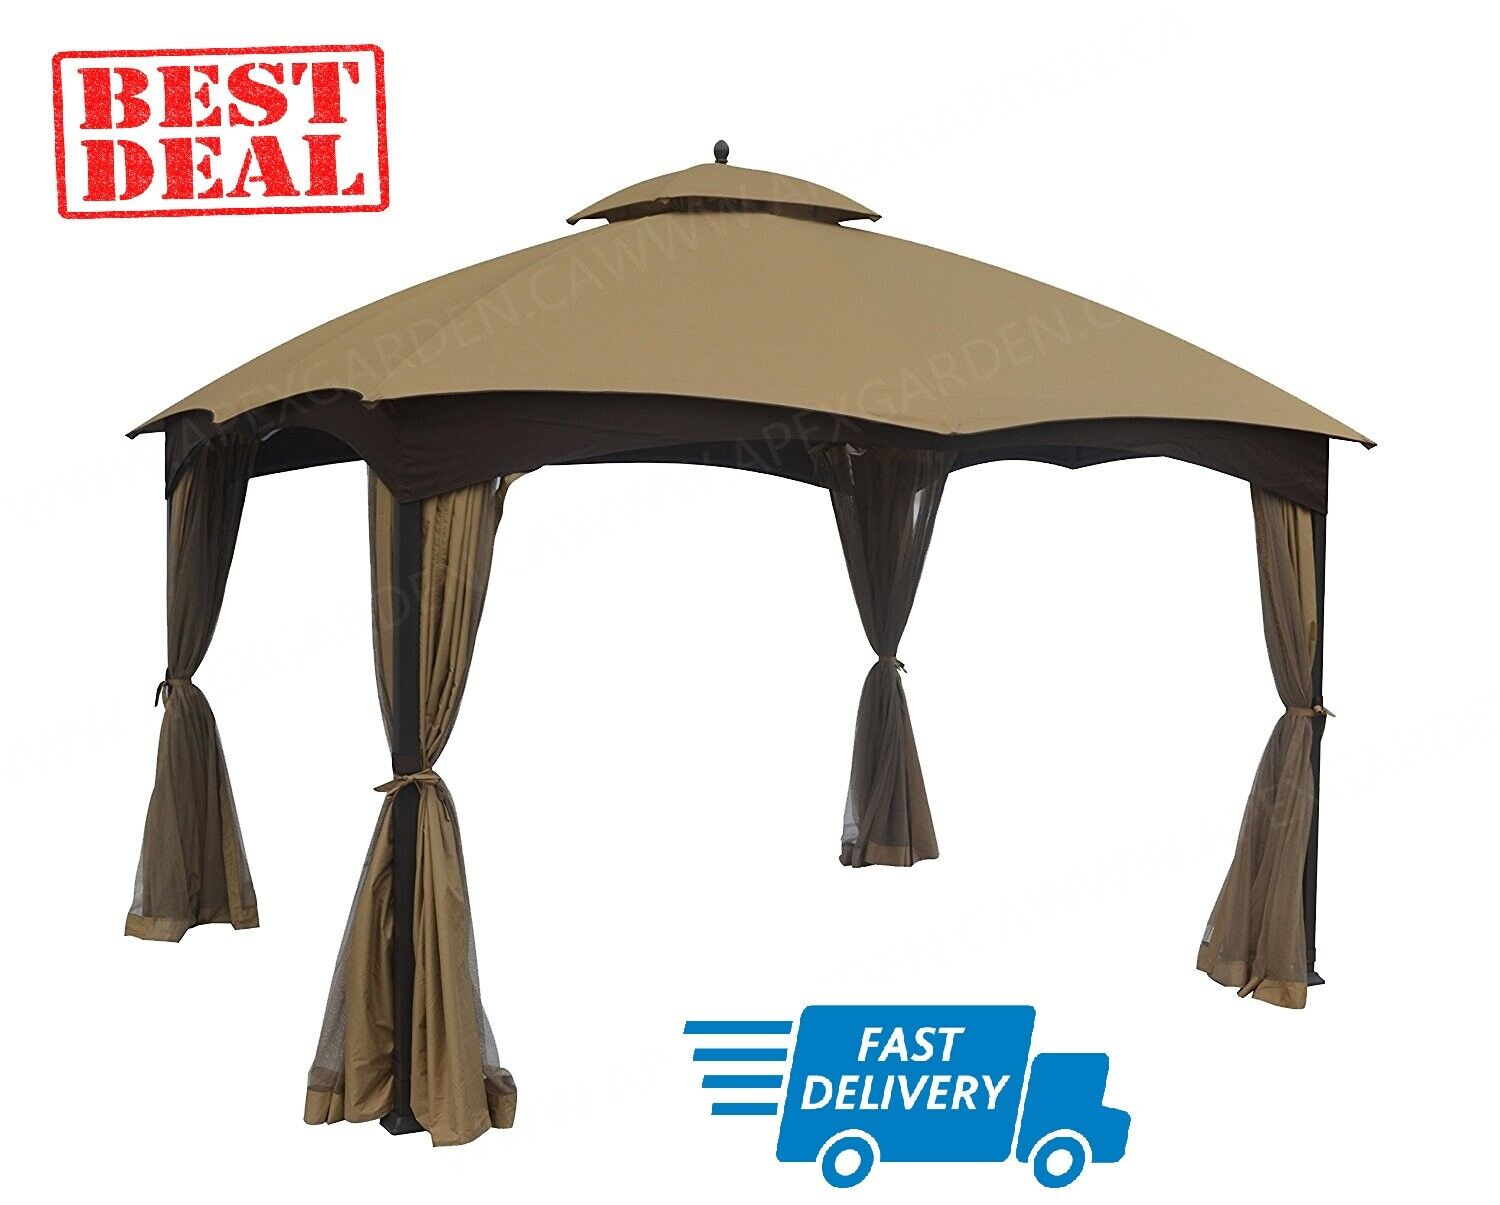 APEX GARDEN Replacement Canopy Top for Lowes Allen Roth 10X12 Gazebo #GF-12S004B-1 and Curtain Set Bundle